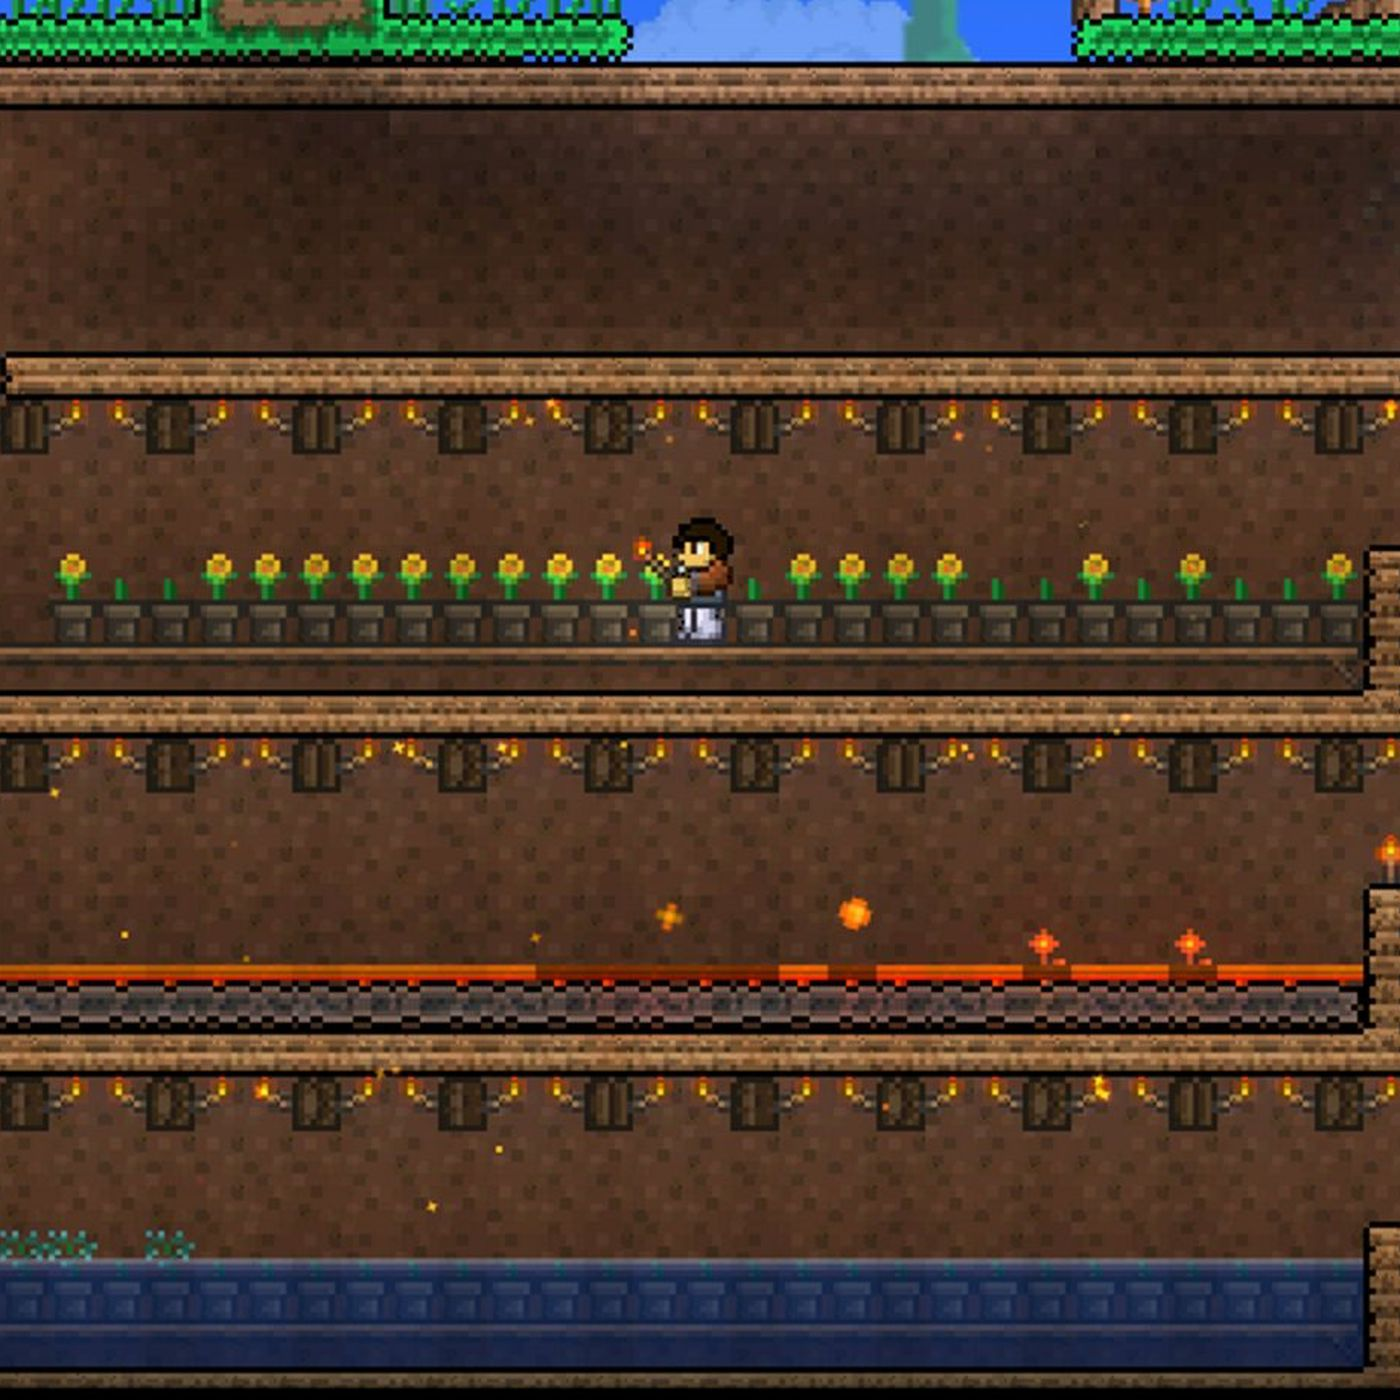 Terraria review: gold mine gutted | Polygon